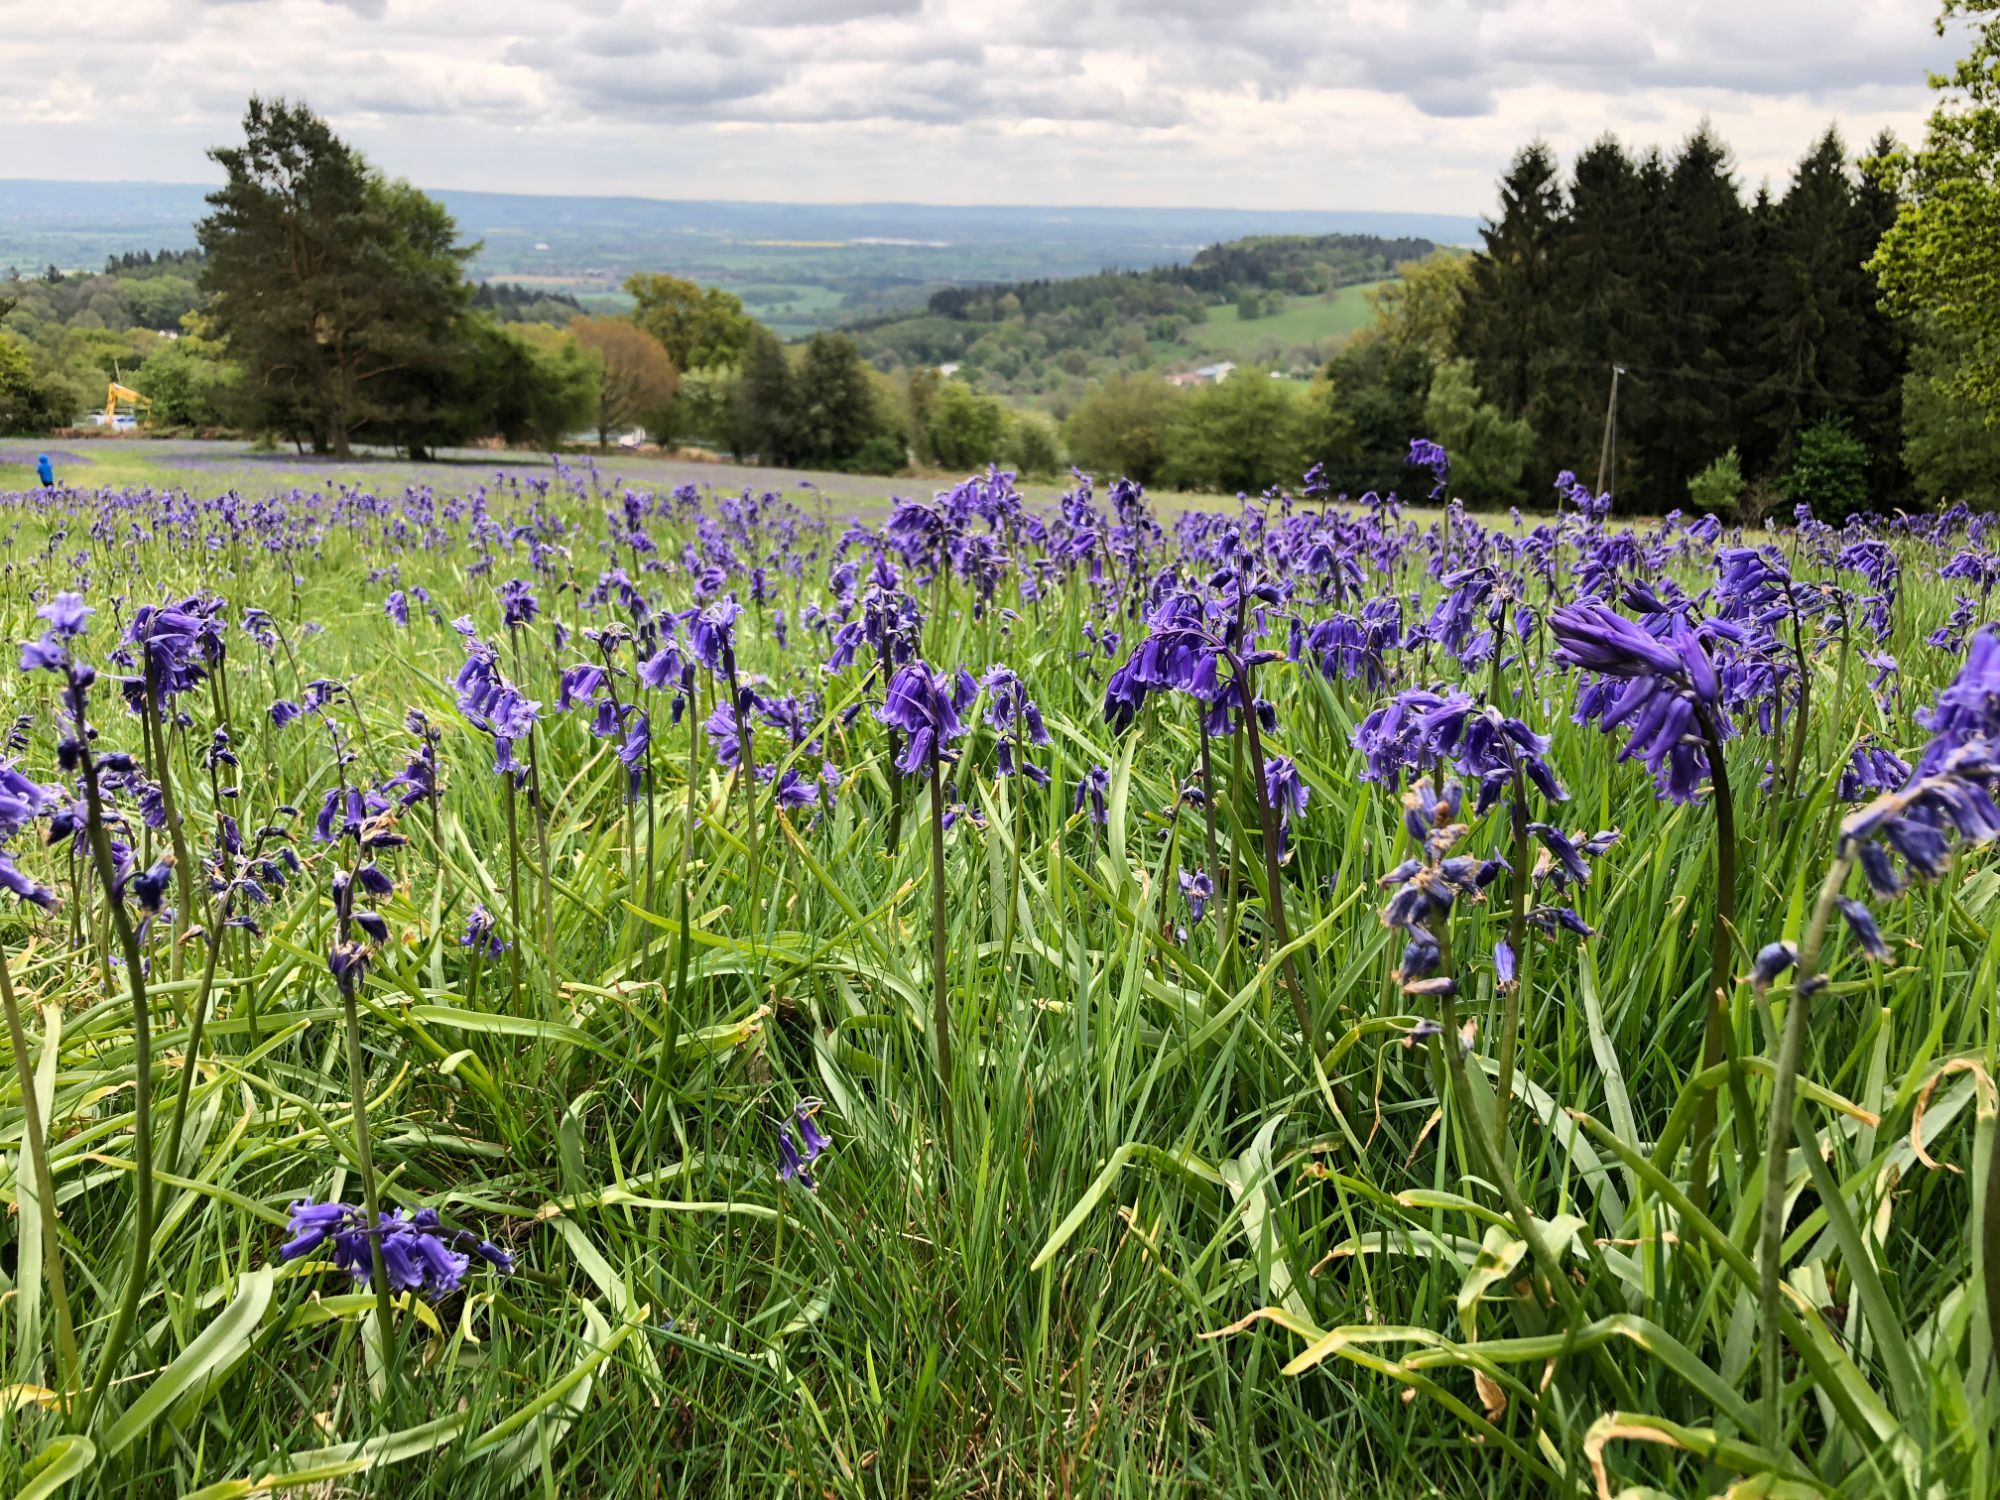 Free stock photo bluebells countryside view